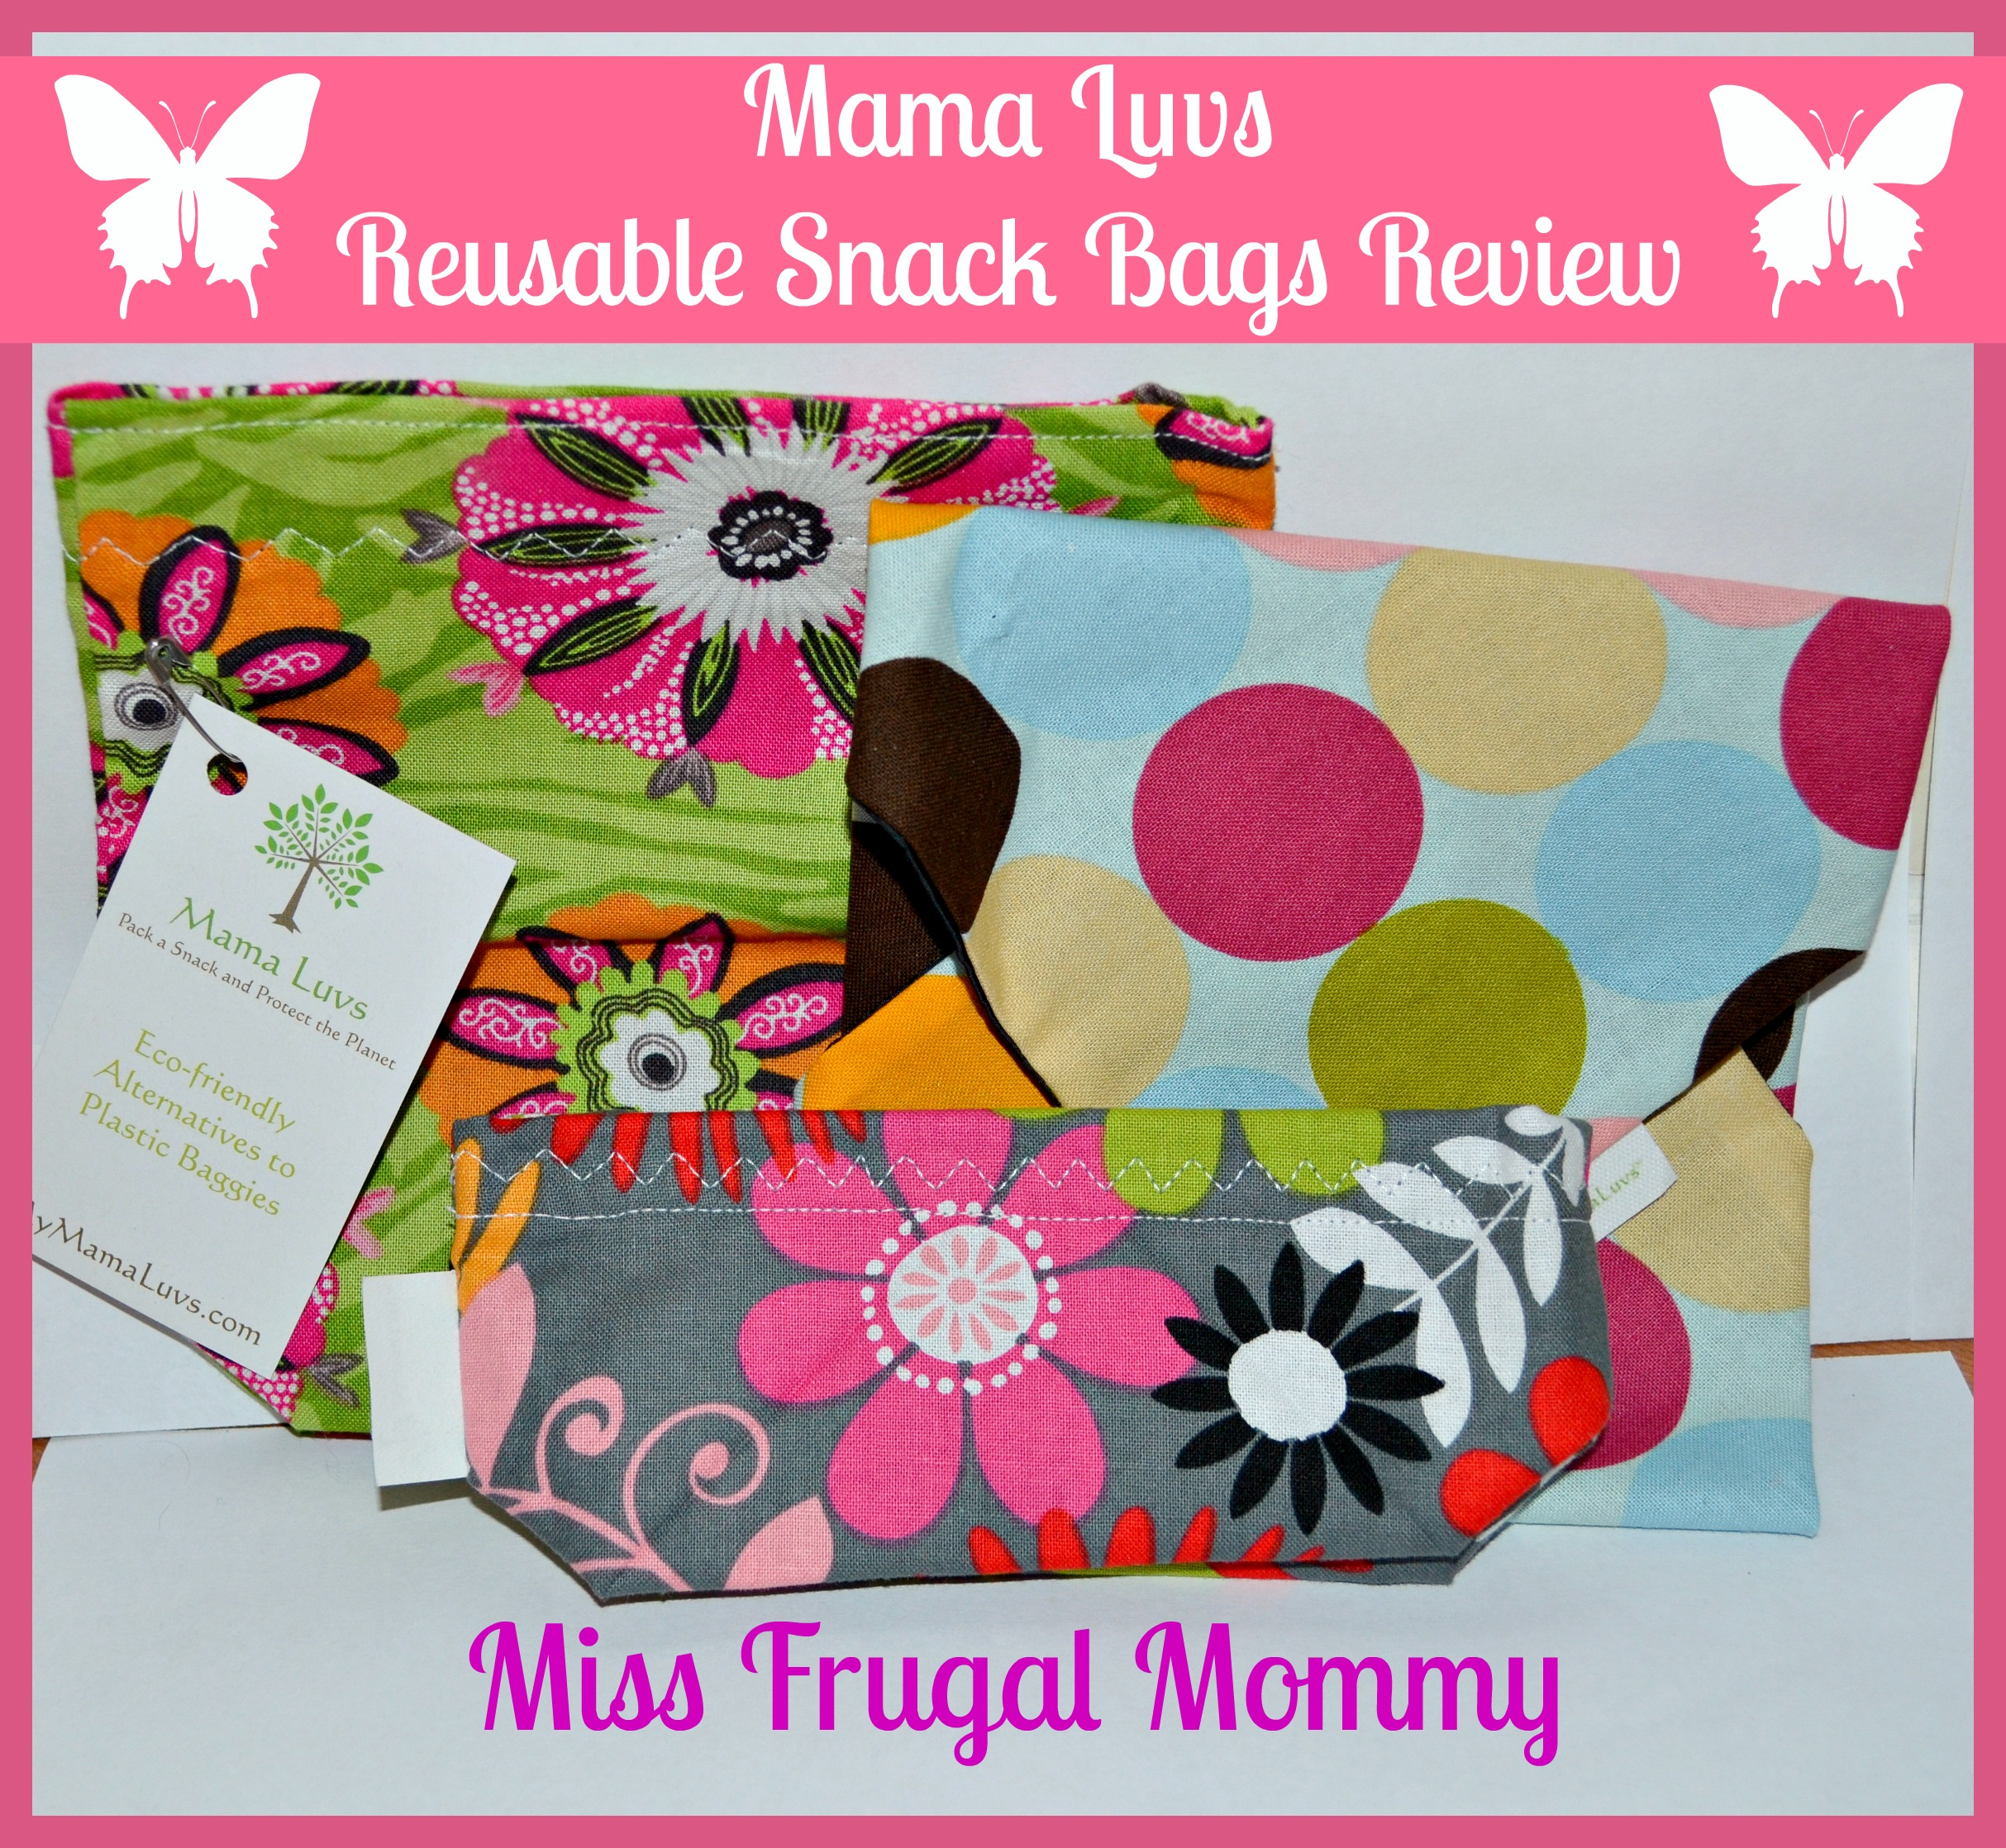 Mama Luvs Reusable Snack Bags Review